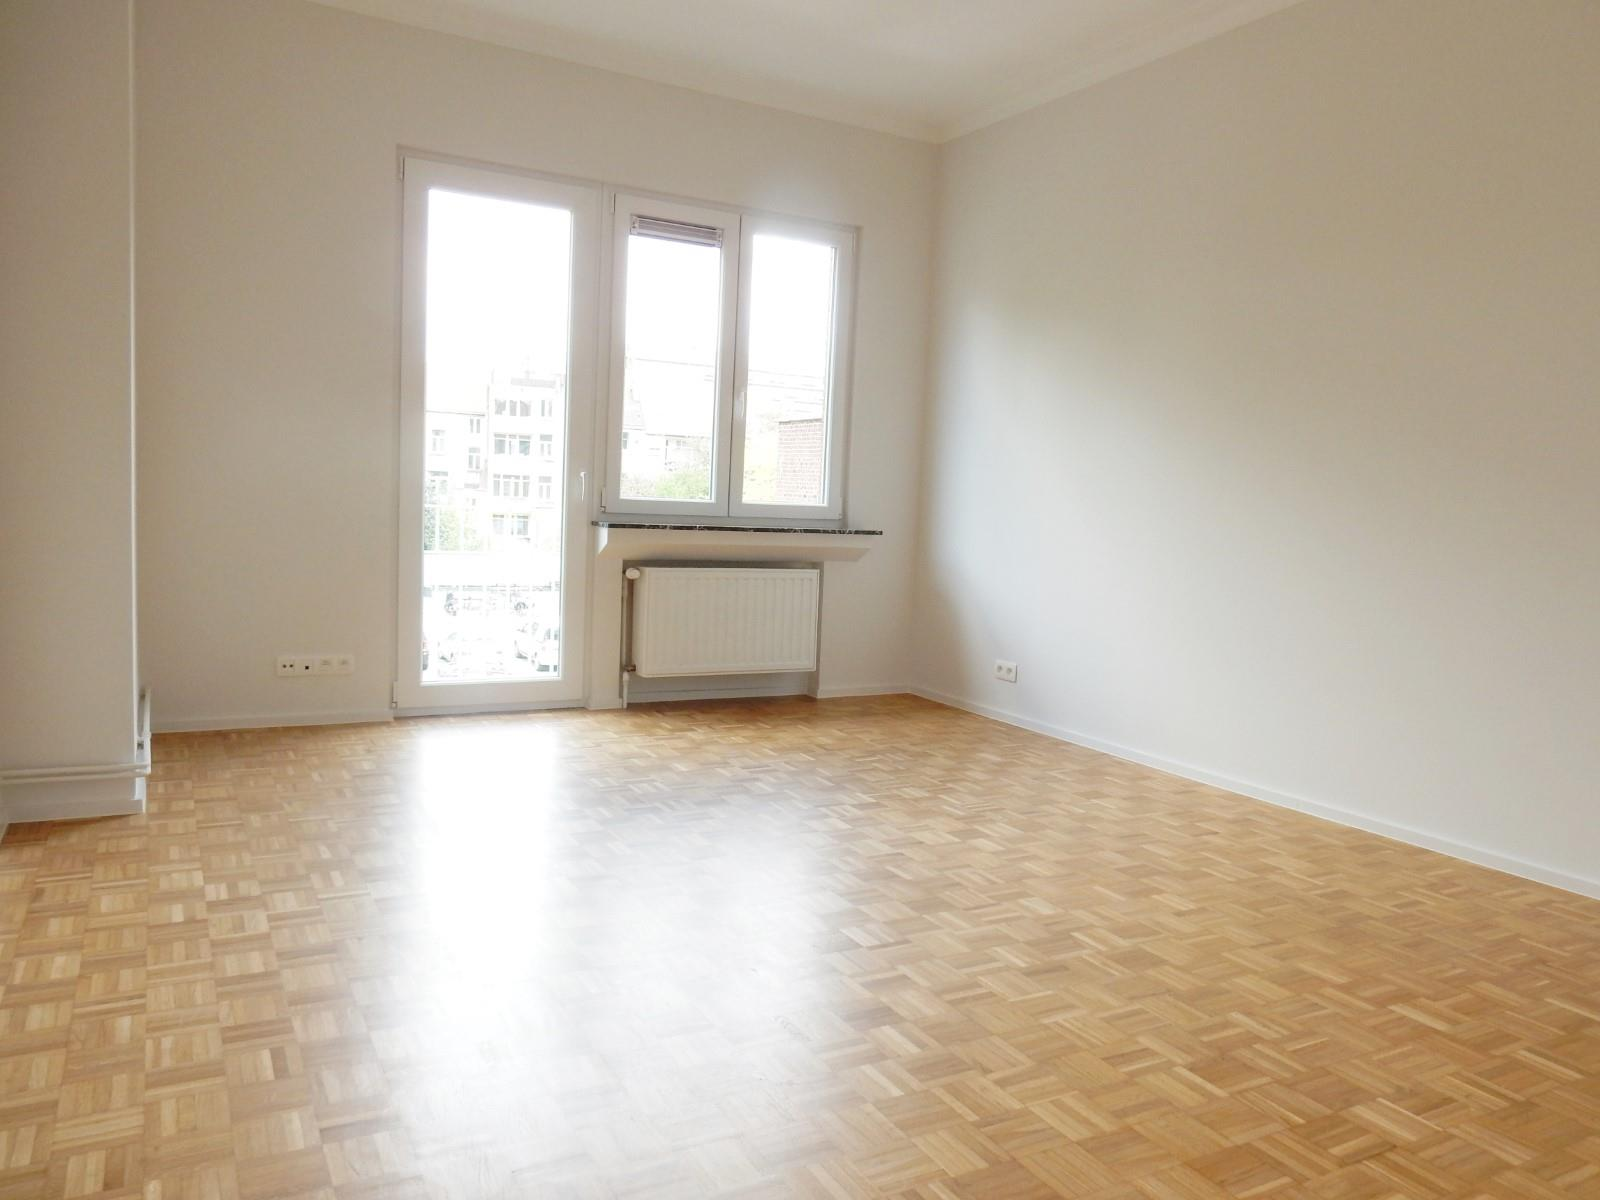 Appartement exceptionnel - Uccle - #3601428-5